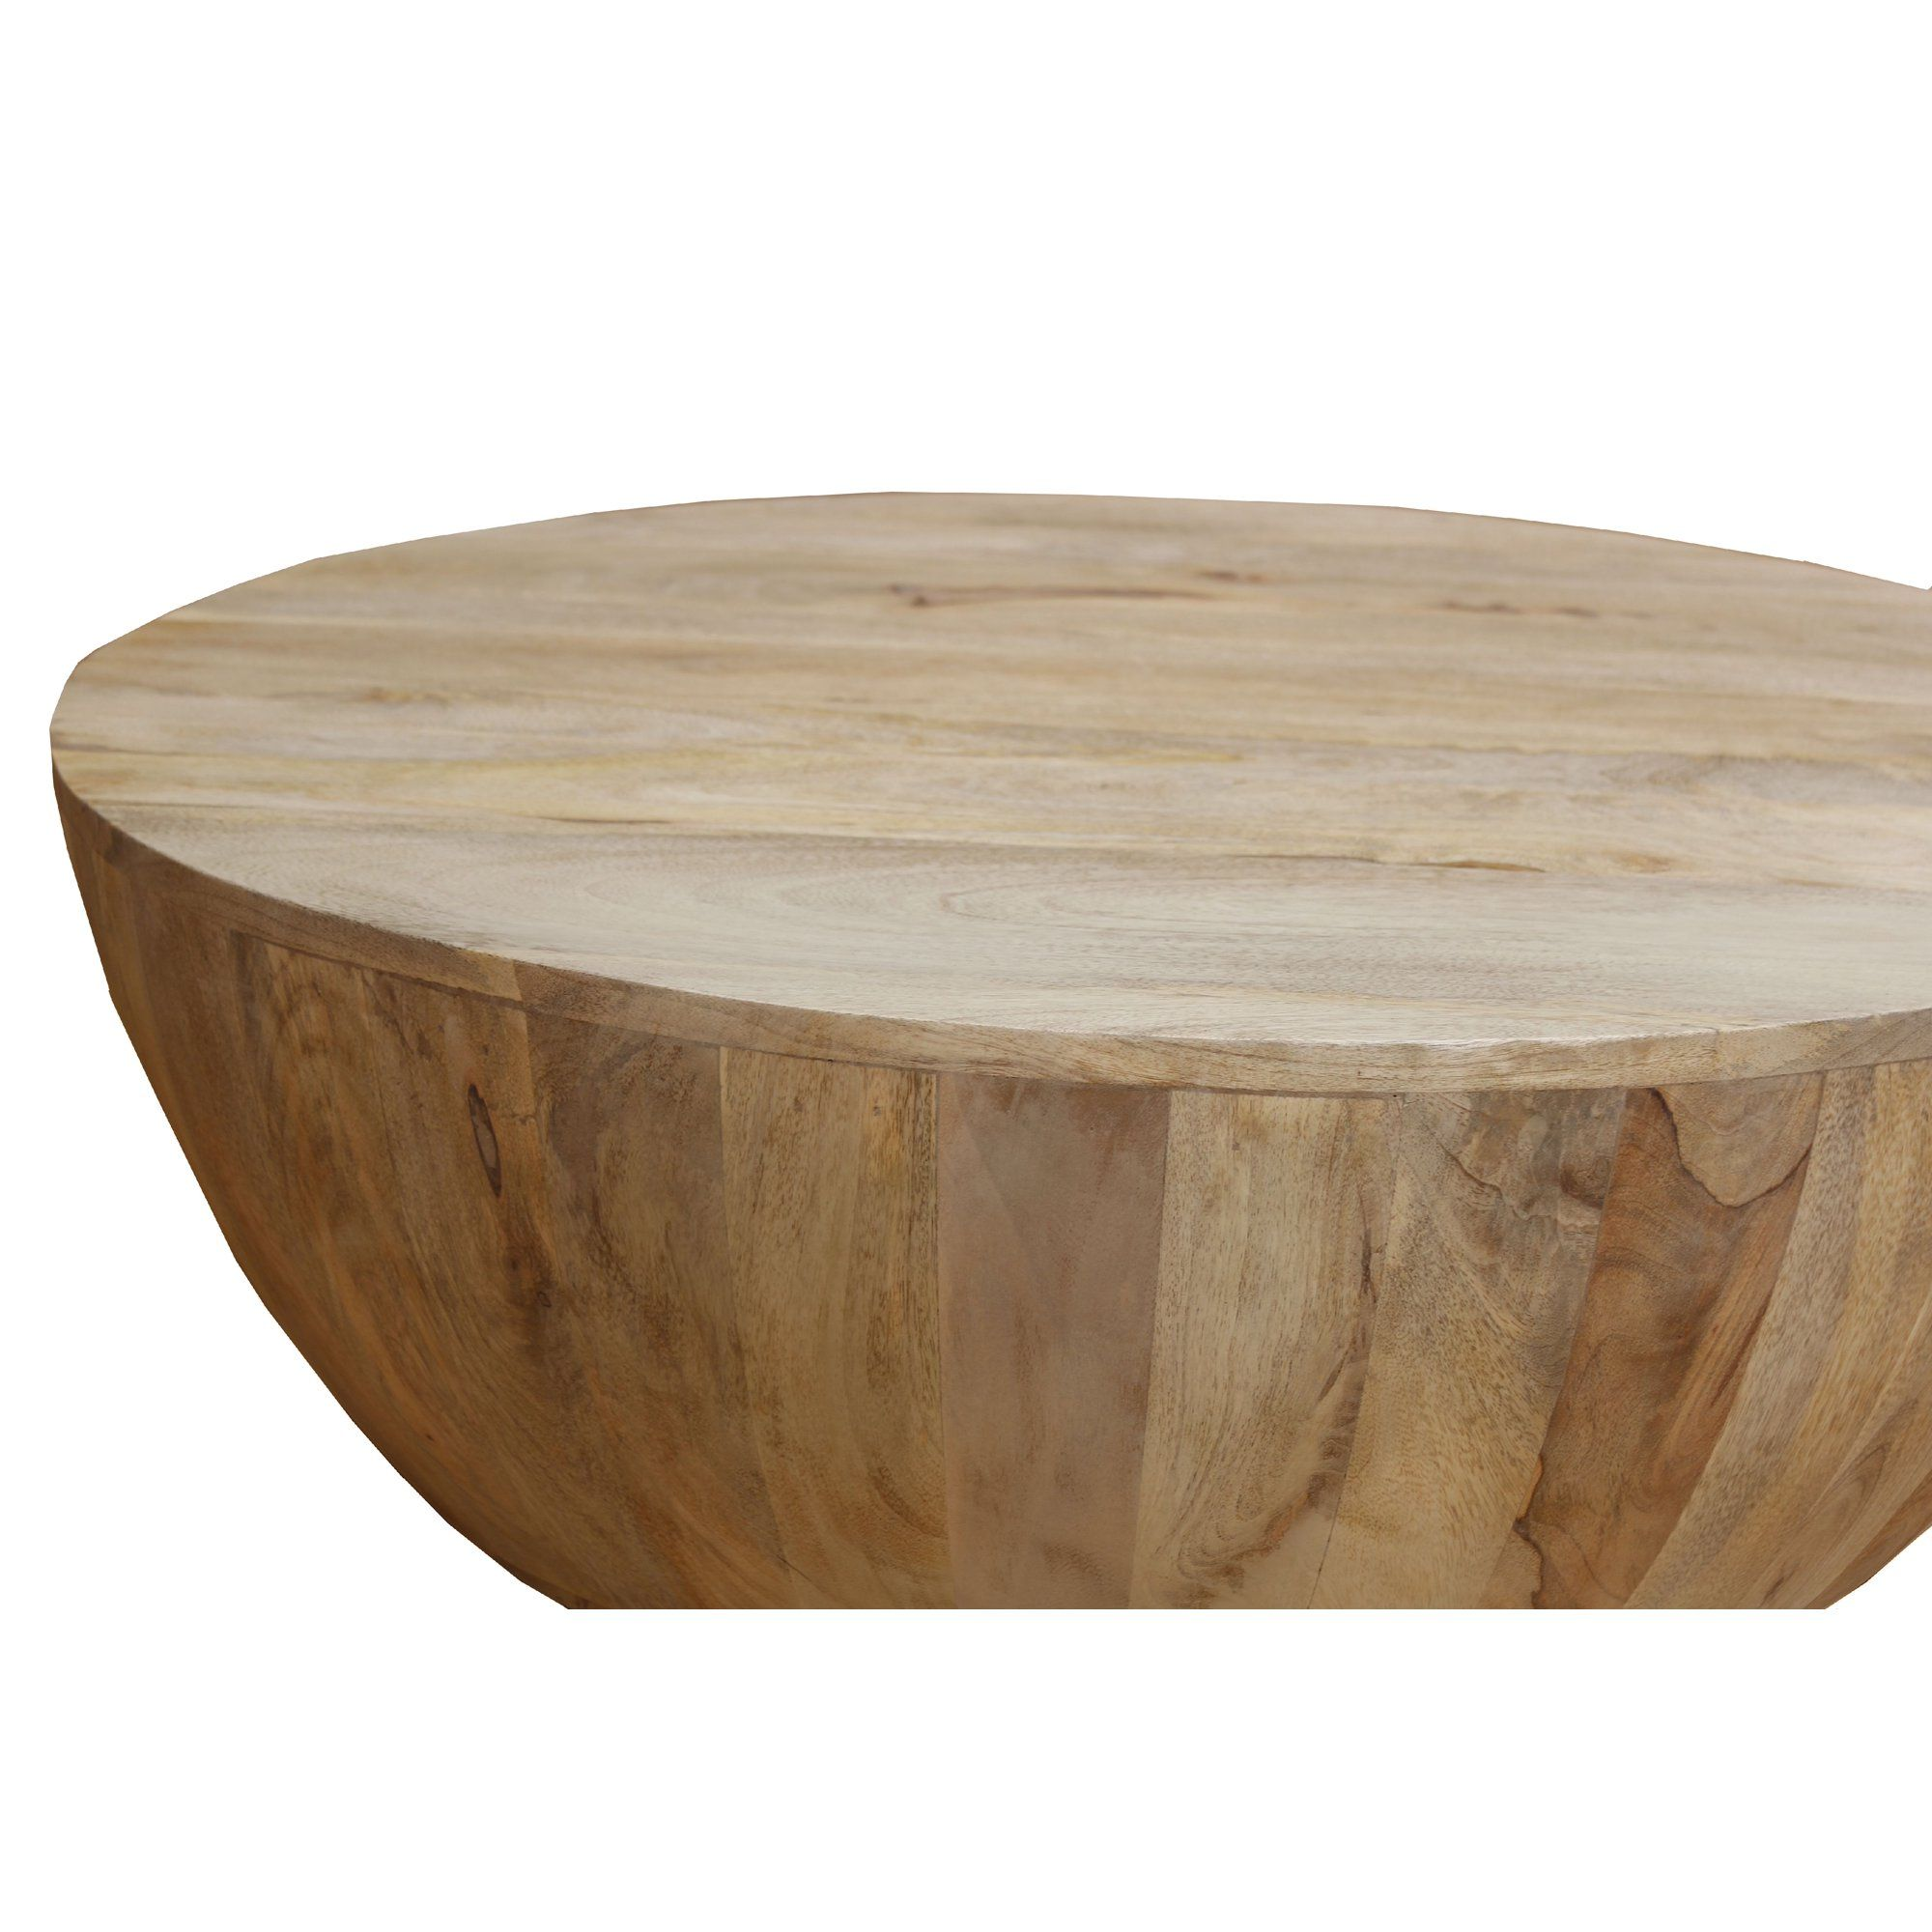 This Round Shape Coffee Table Is Made From Mango Wood And Features A Smooth Wide Top That Can Round Wood Coffee Table Mango Wood Coffee Table Drum Coffee Table [ 1200 x 1200 Pixel ]